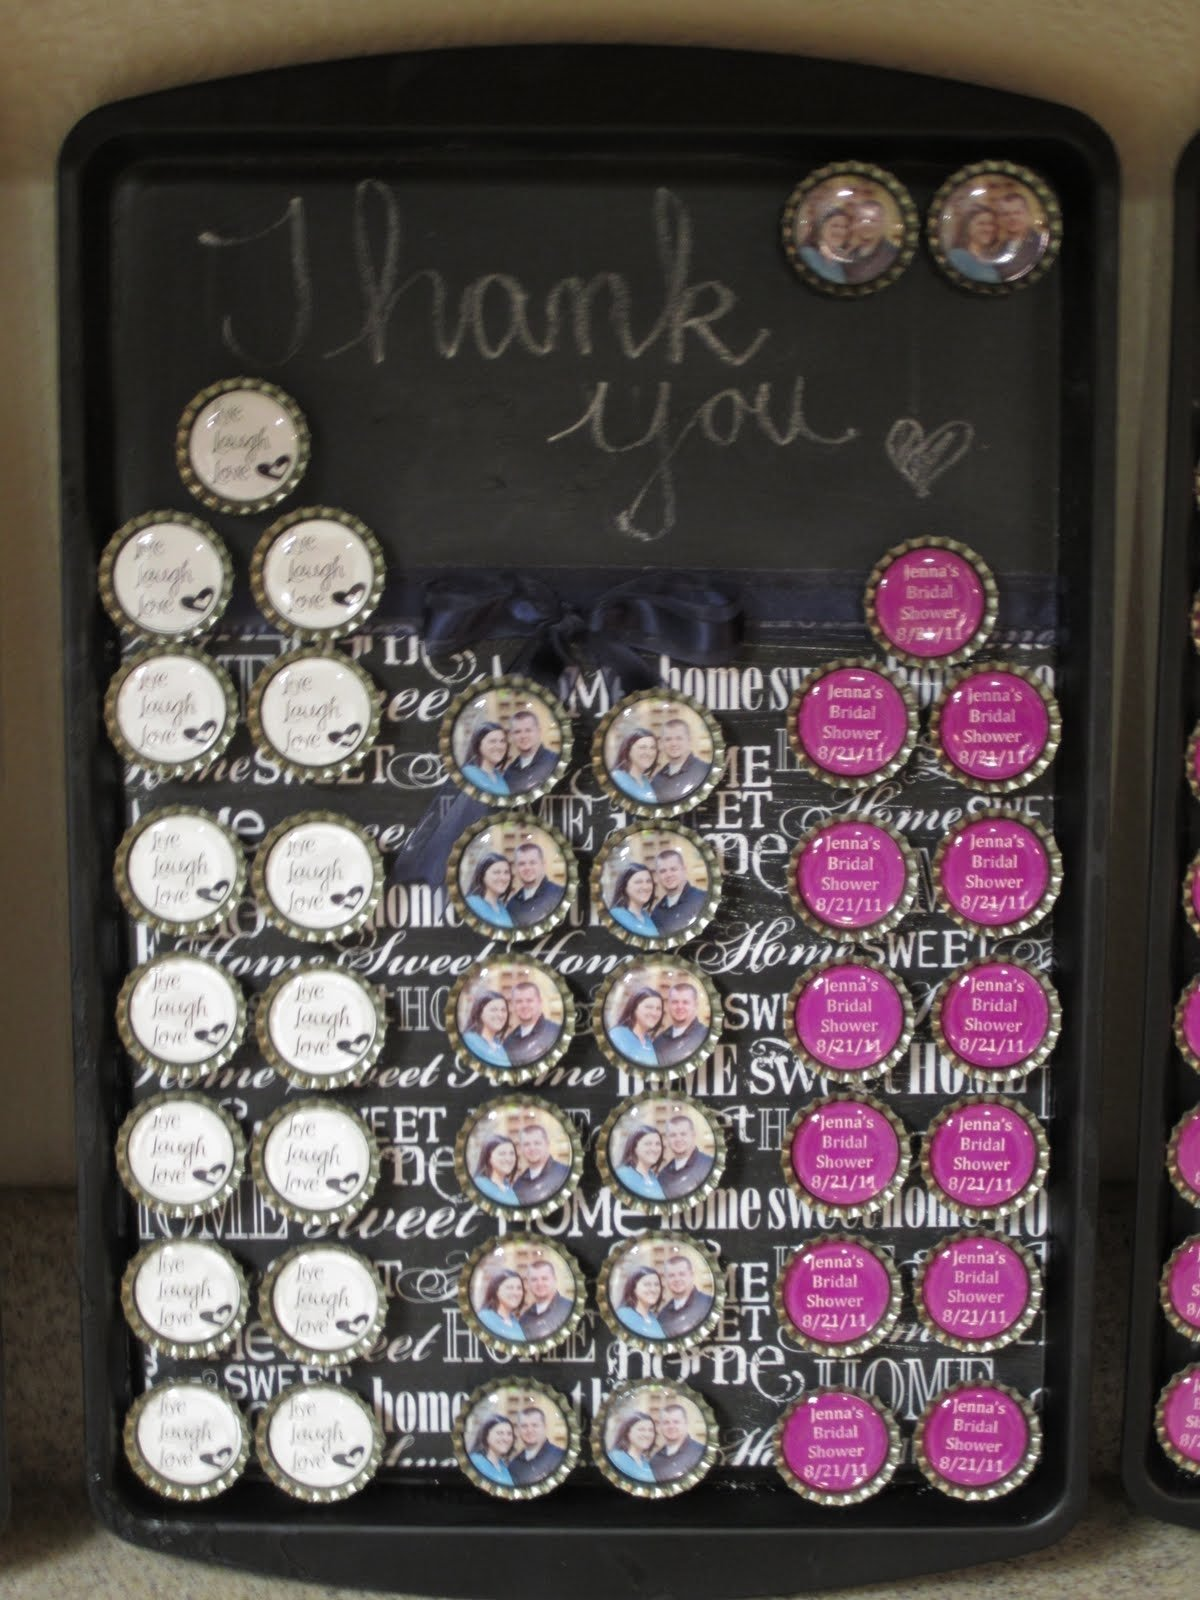 10 Most Popular Homemade Bridal Shower Gift Ideas photo nicole s nifty creations image 1 2020